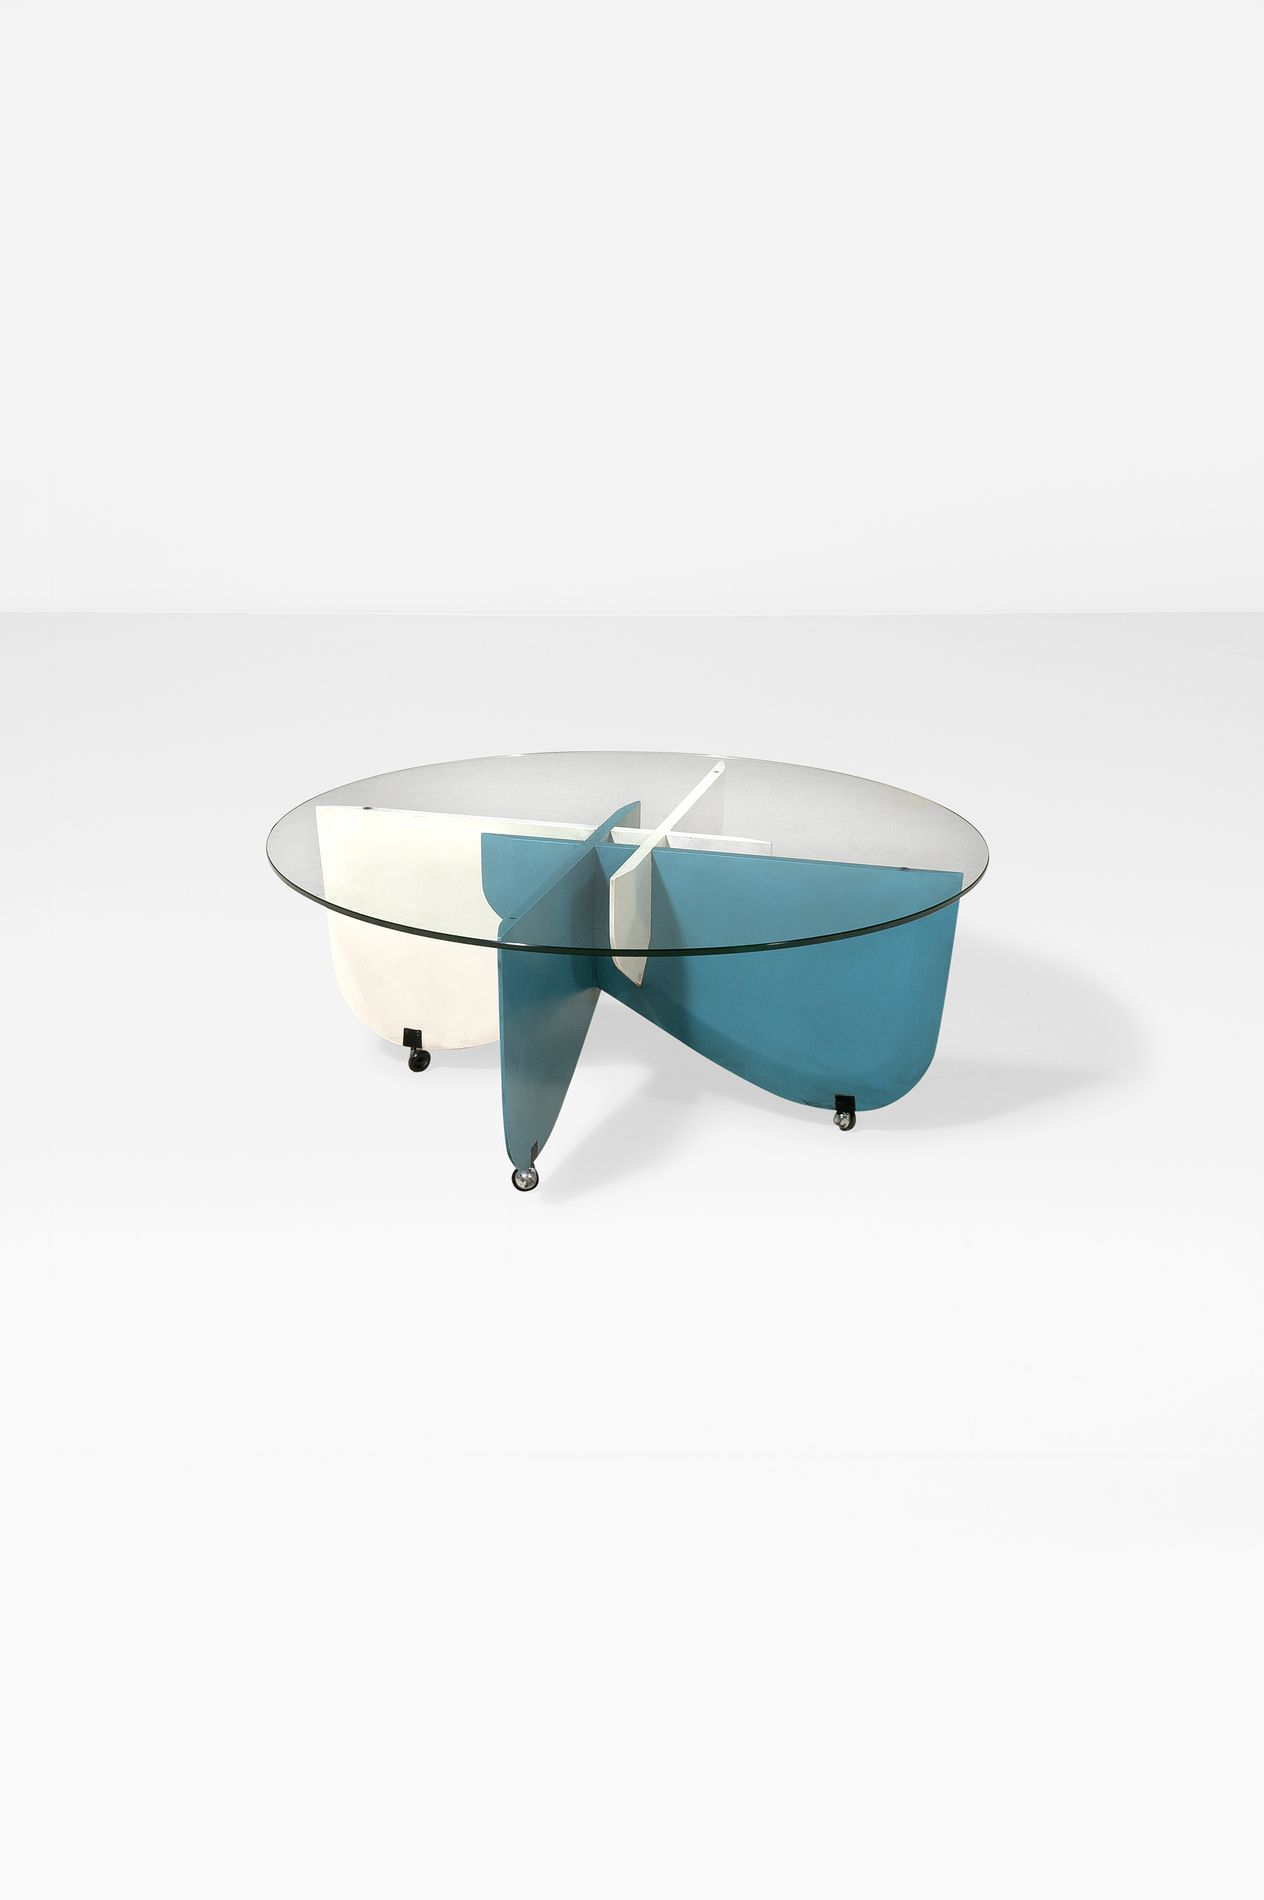 Gio Ponti; Lacquered Wood and Glass 'Apta' Coffee Table for Walter Ponti, 1970.